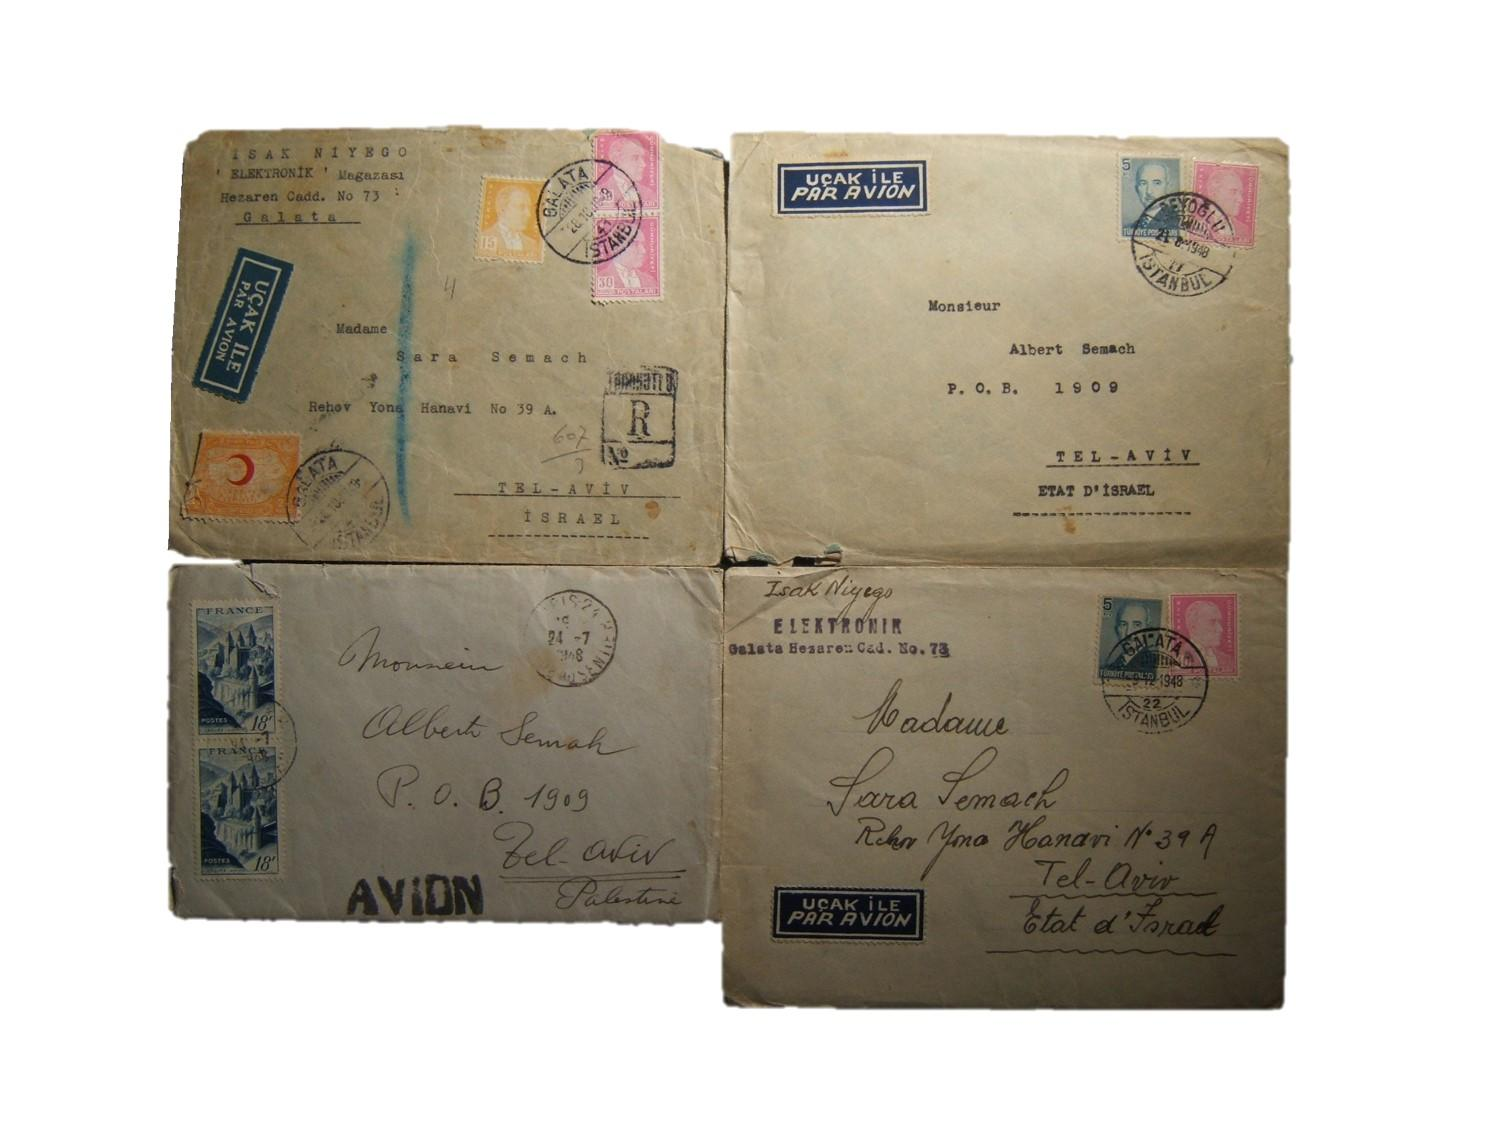 Lot x4 early Israeli foreign postal links: 1 airmail cover ex PARIS to TEL AVIV pmk'd 27-7-48 (addressed